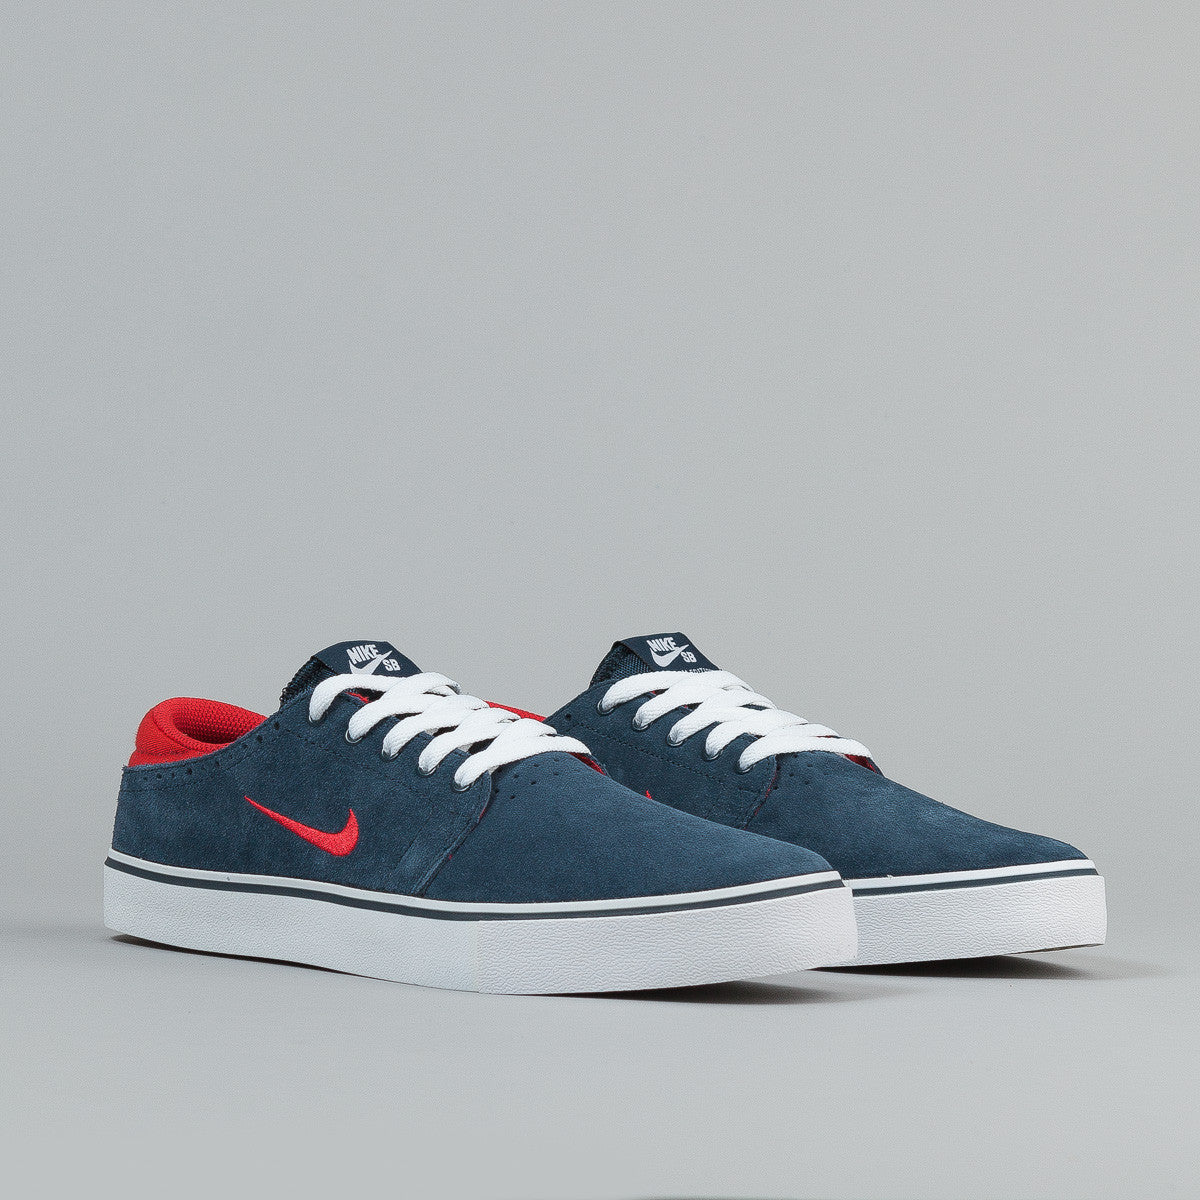 Nike SB Team Edition Armory Navy / University Red - White - Gum